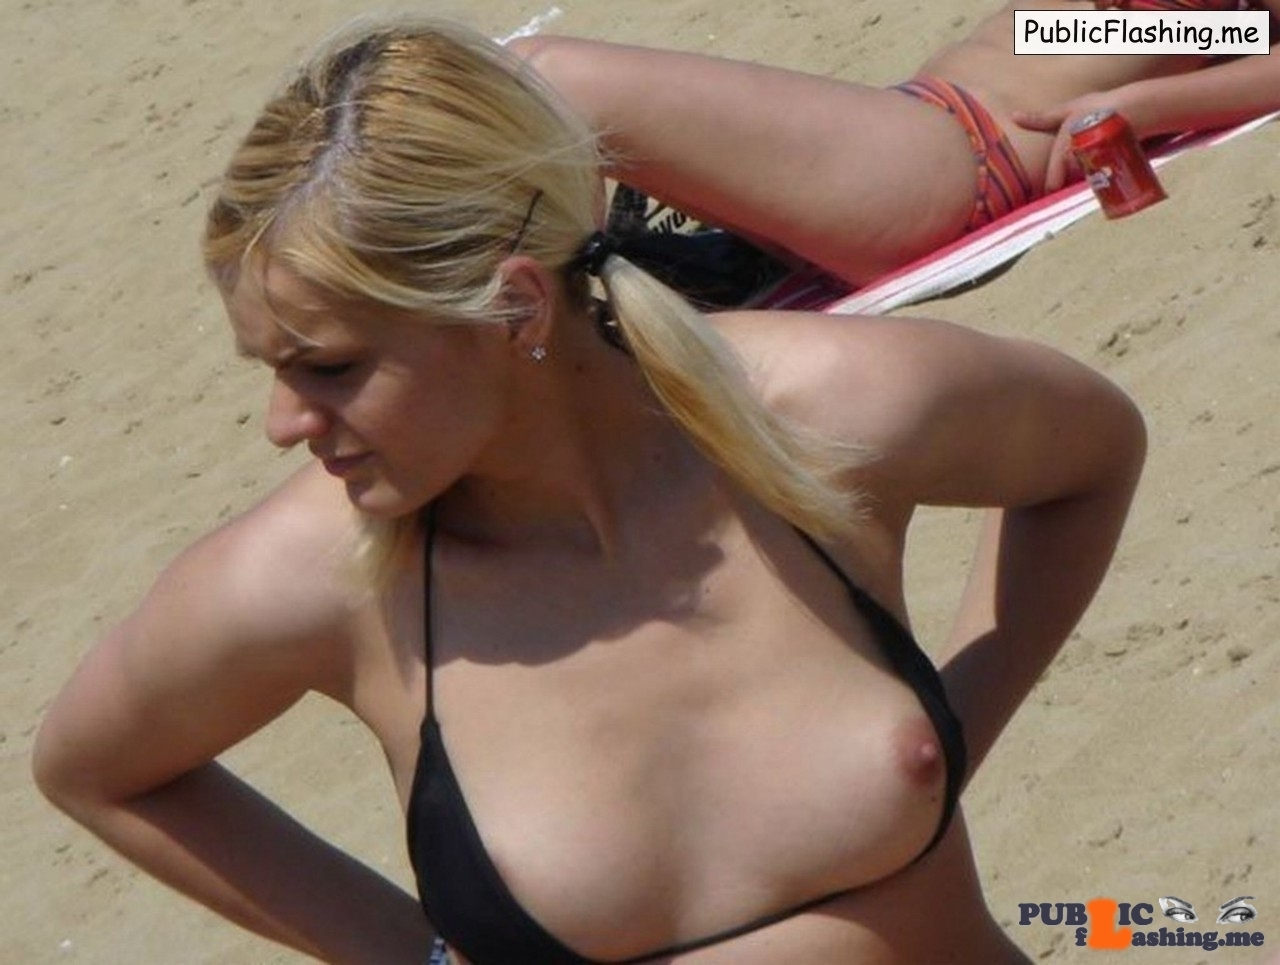 Nip slip accident on the beach